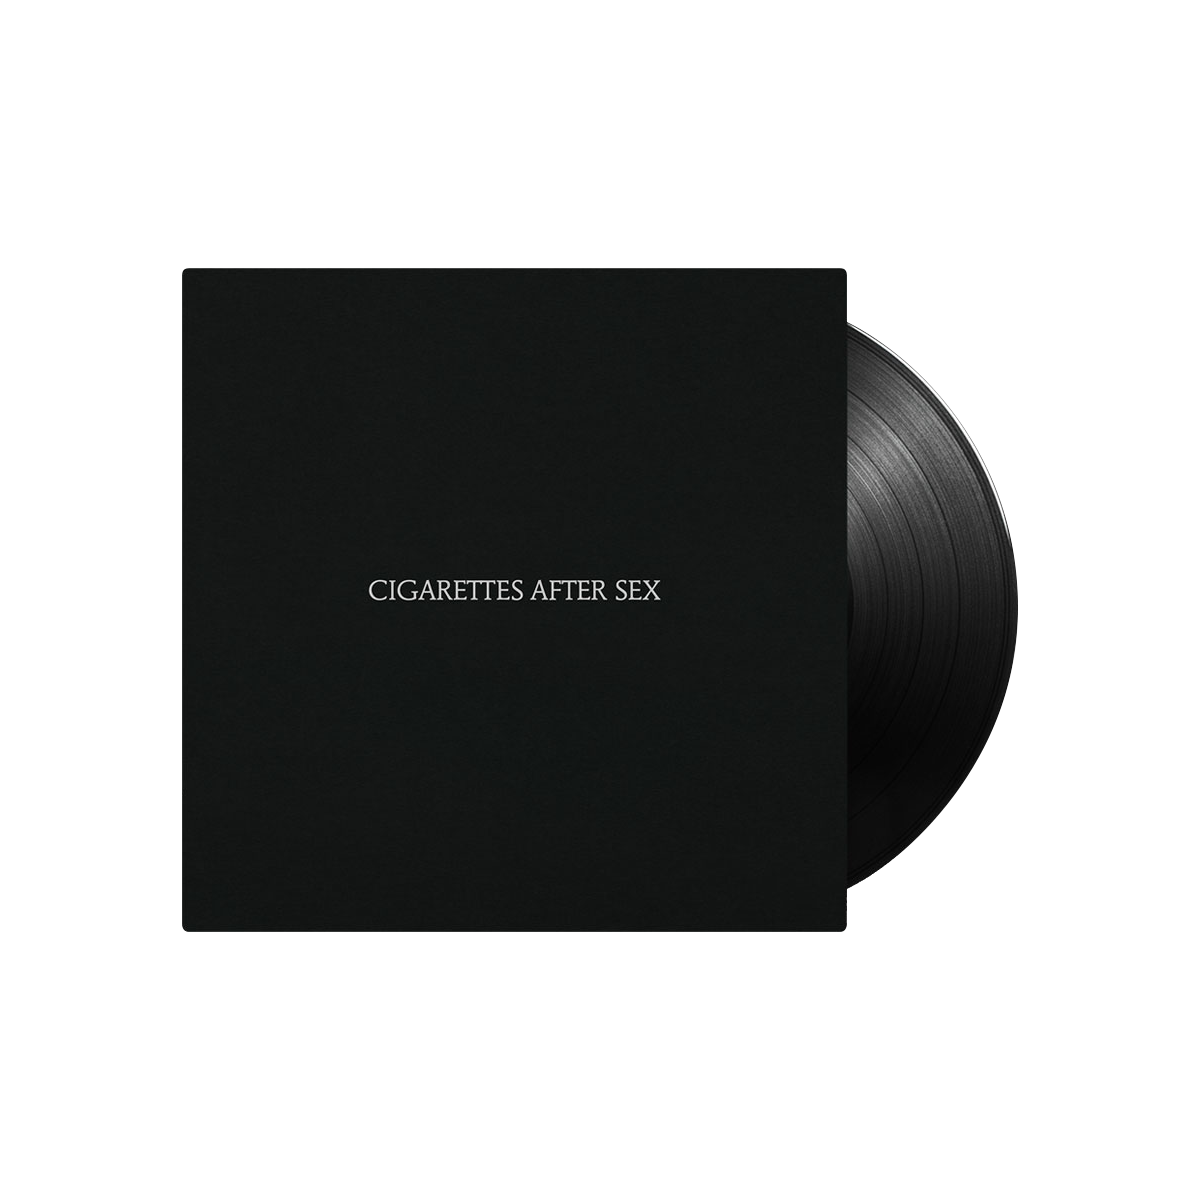 "Cigarettes After Sex 12"" Vinyl LP"